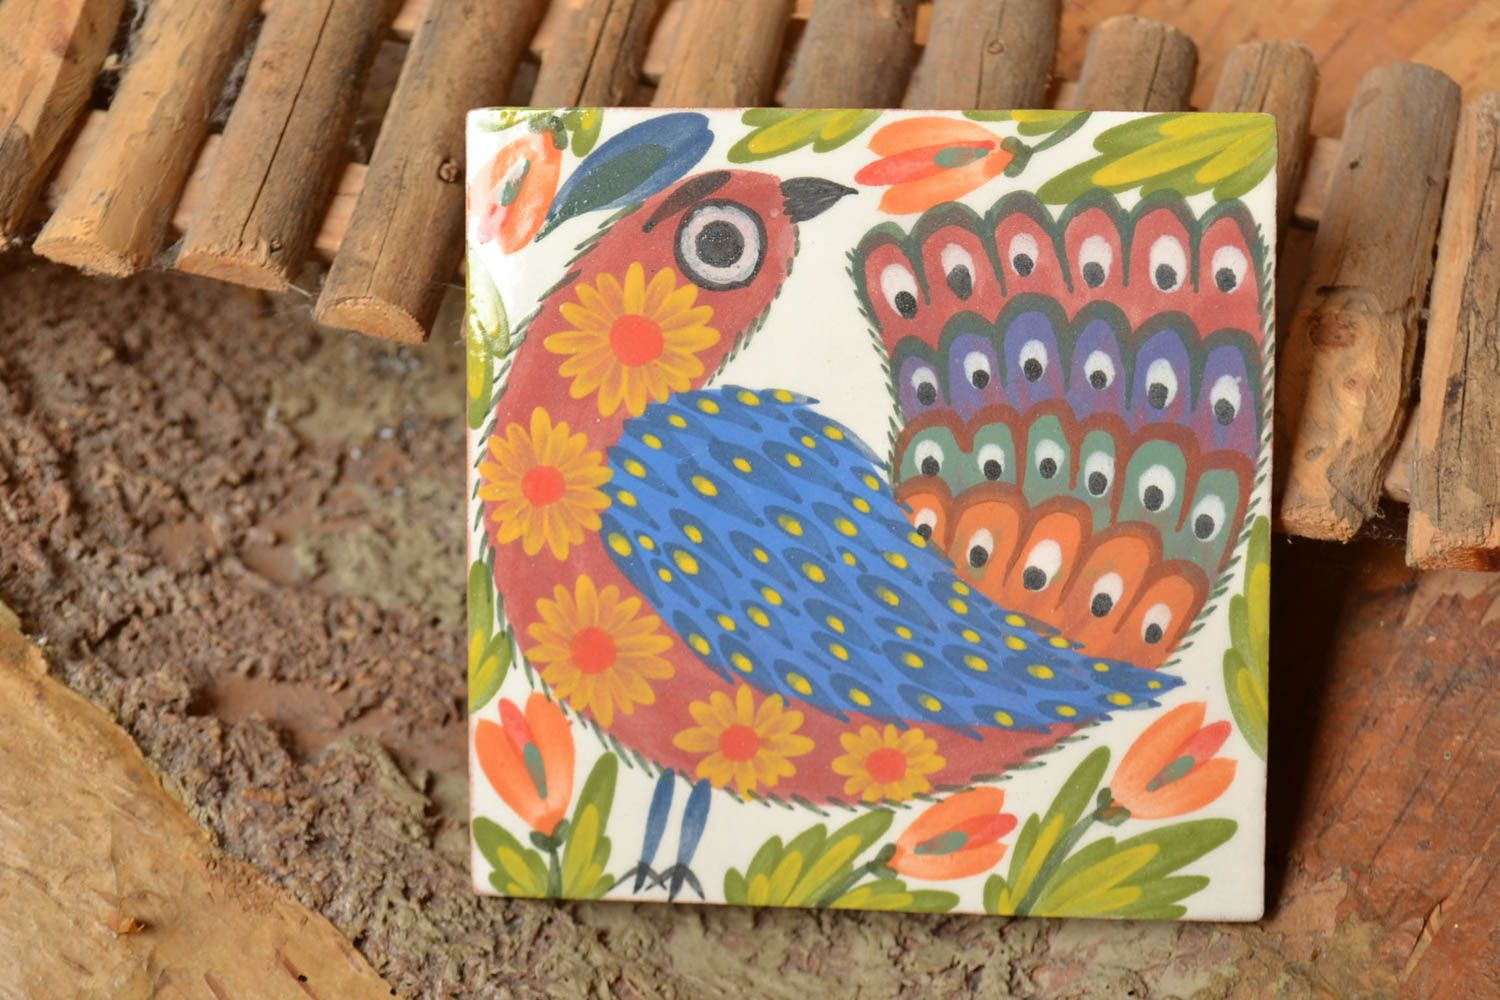 MADEHEART > Handmade ceramic tile Bird of Paradise painted with ...